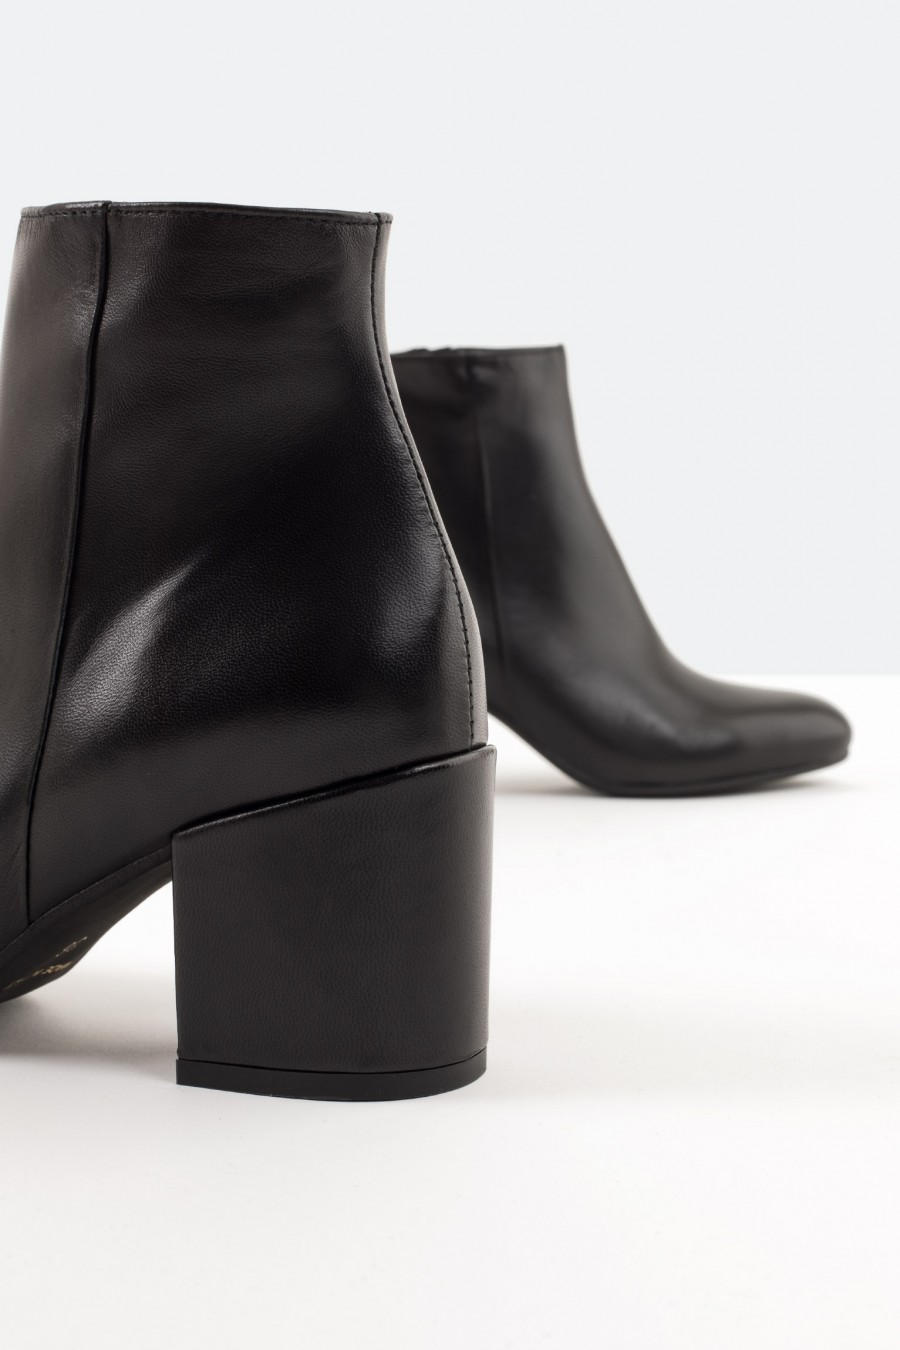 Black leather ankle boots with side zips